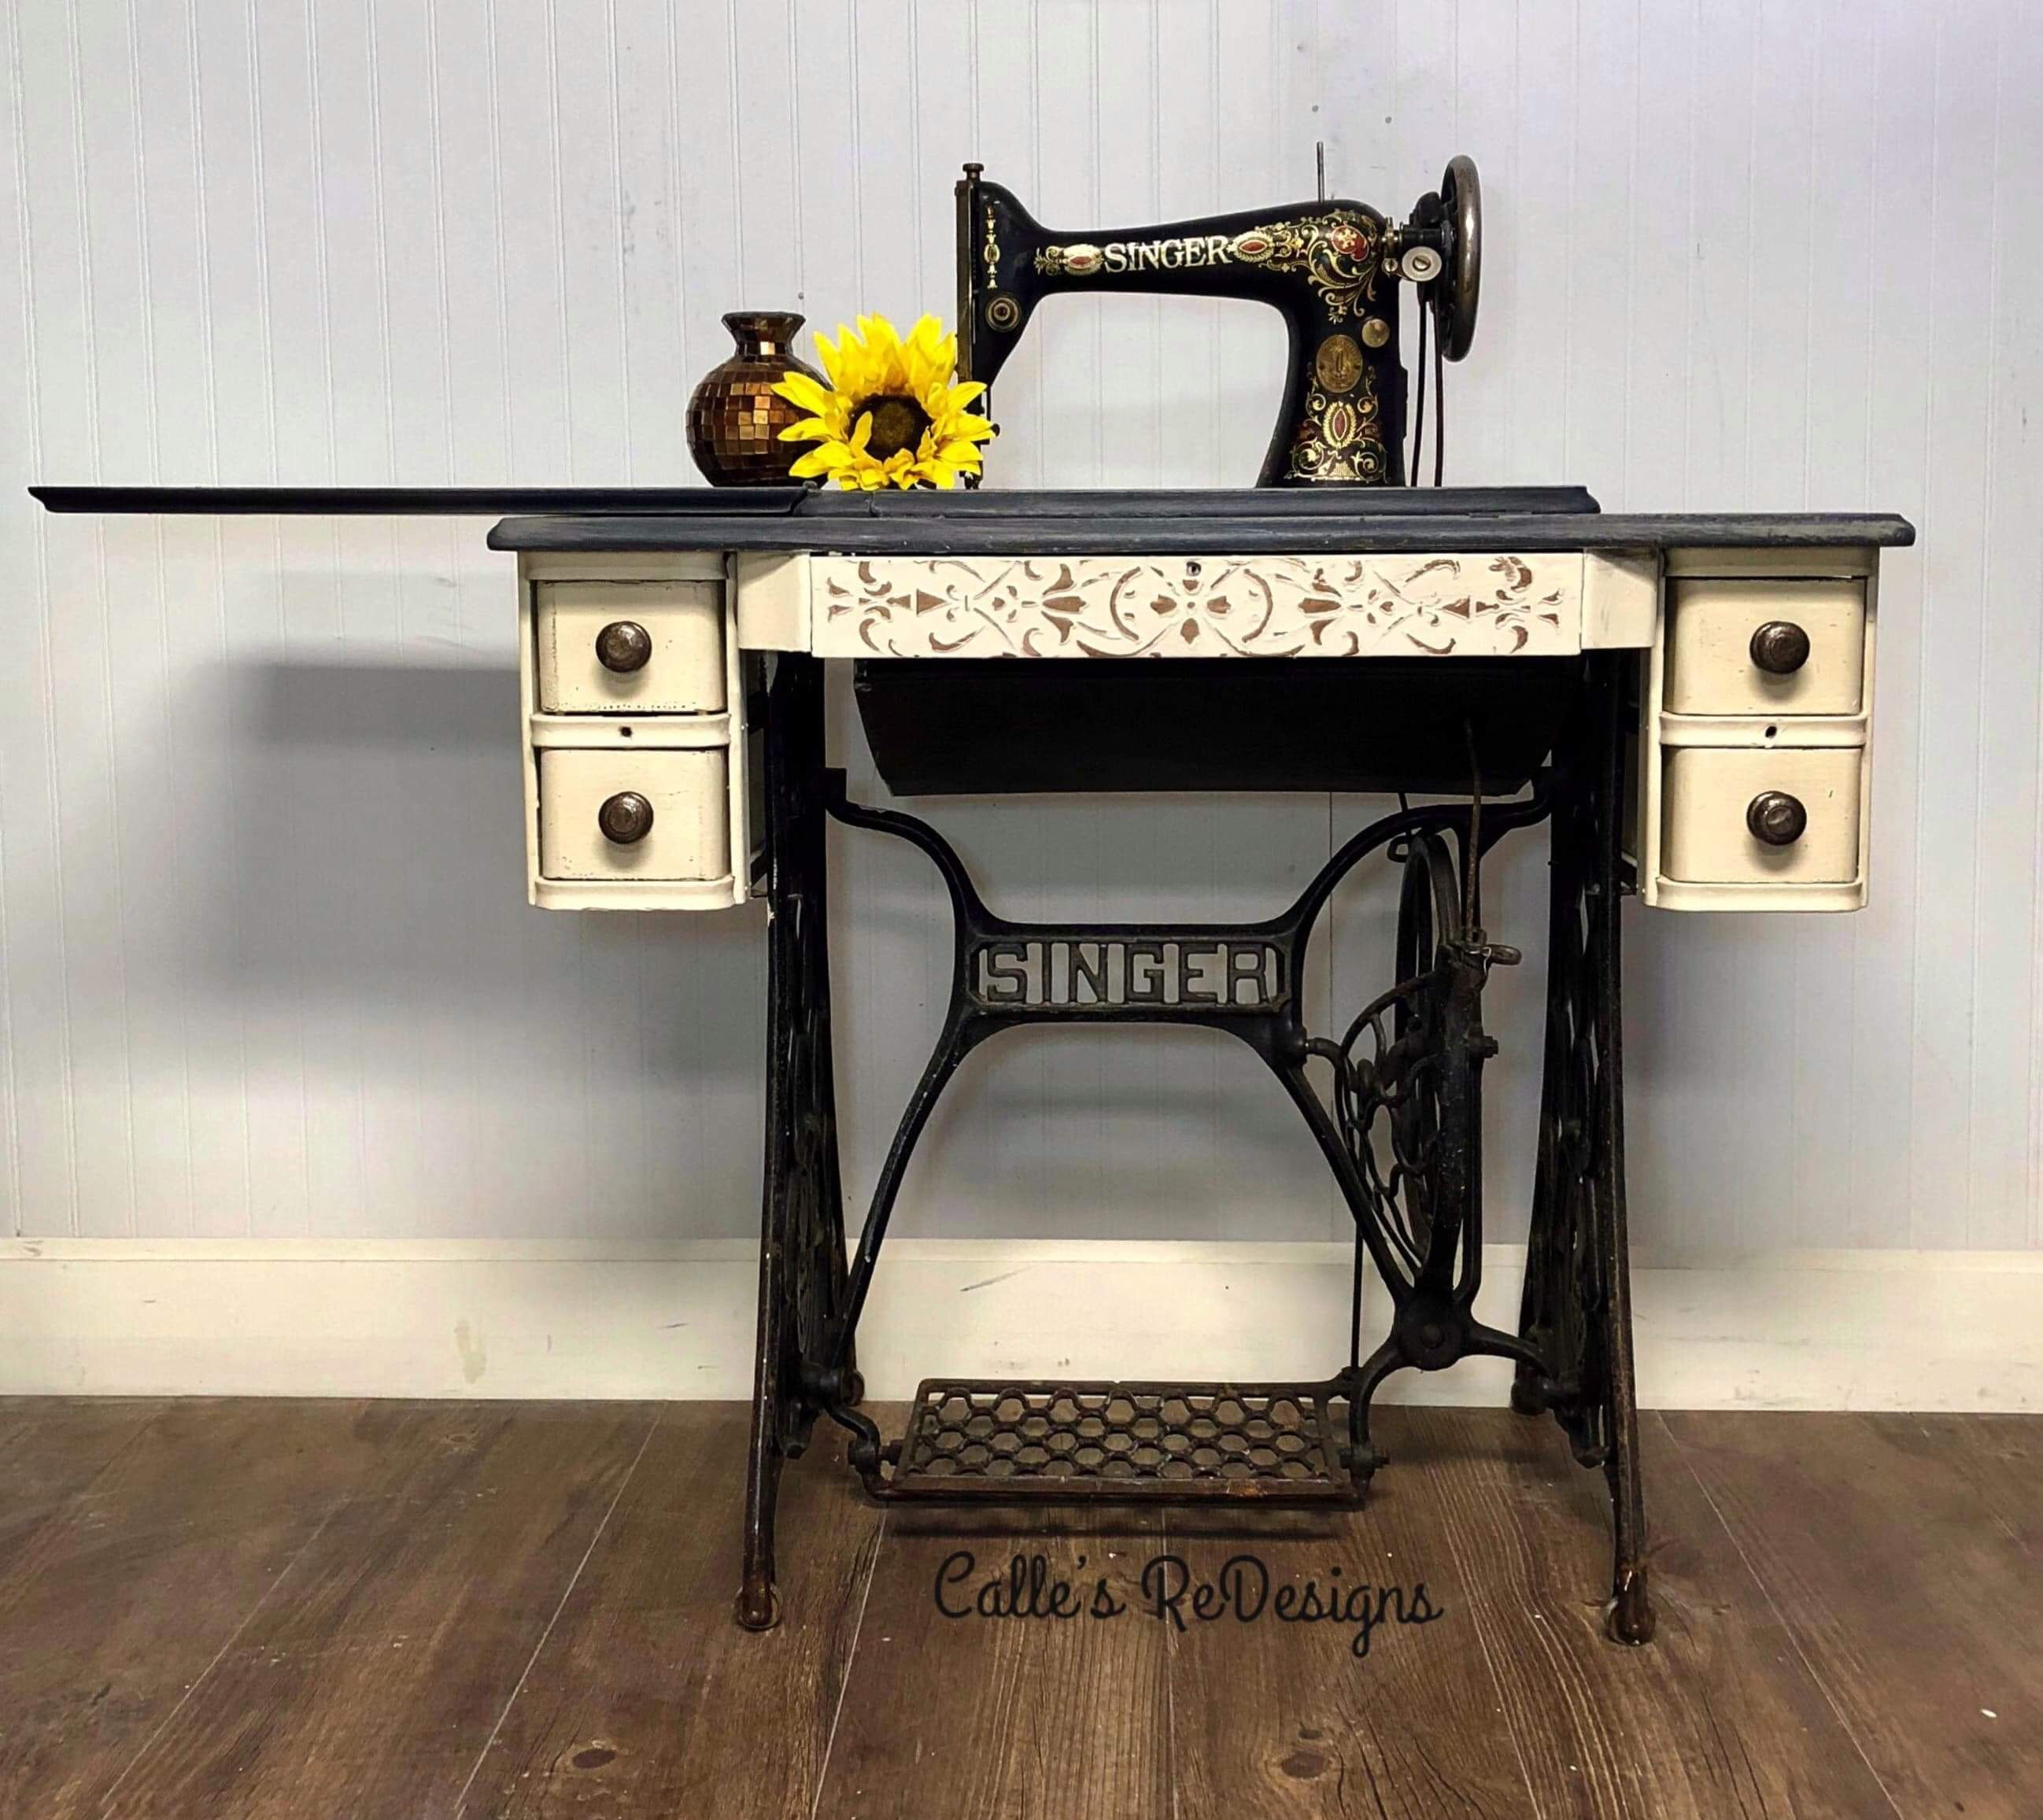 Vintage Sewing Machine Restored I painted this